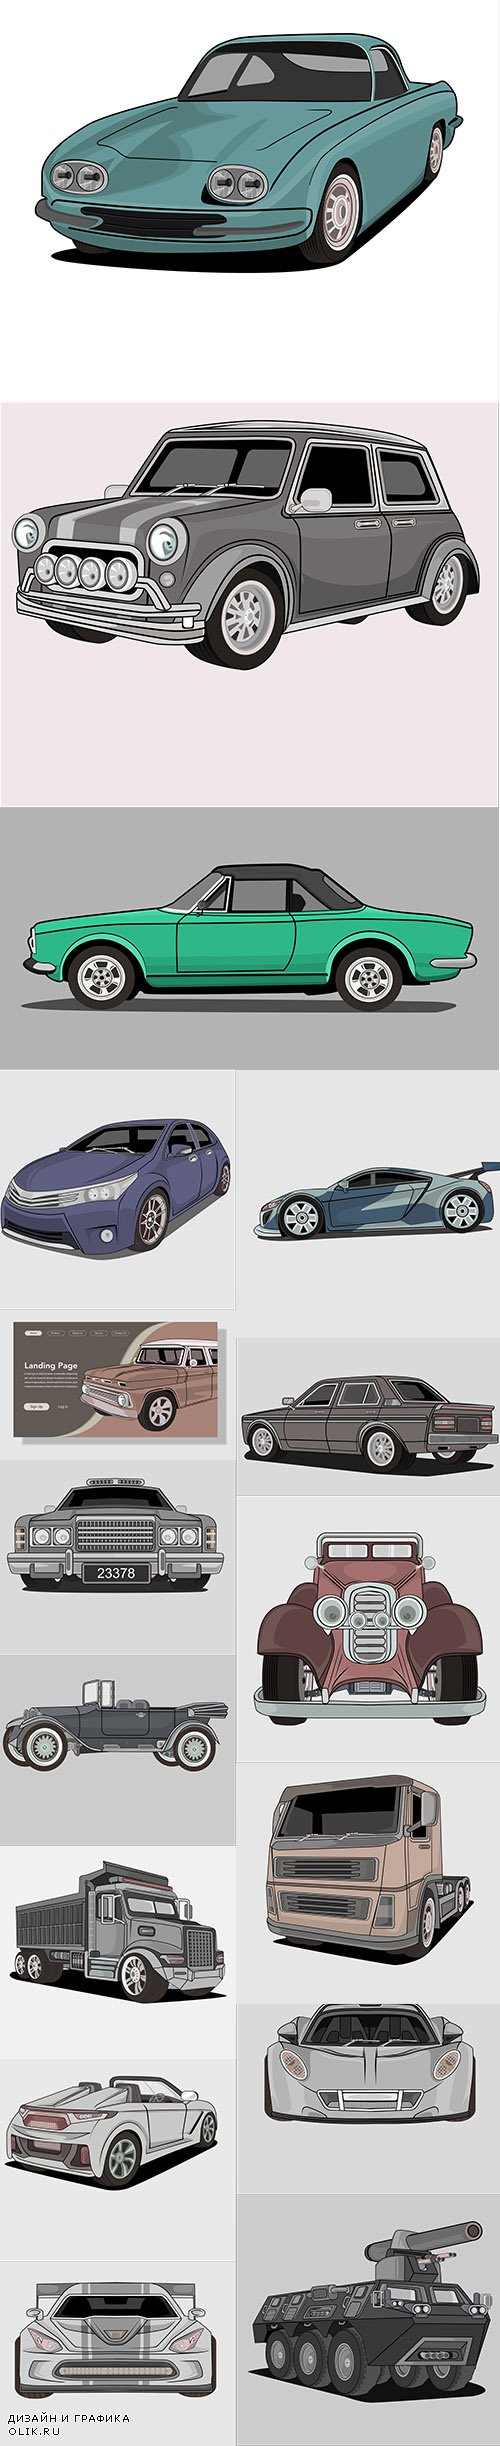 Vintage Car Premium Illustrations Set